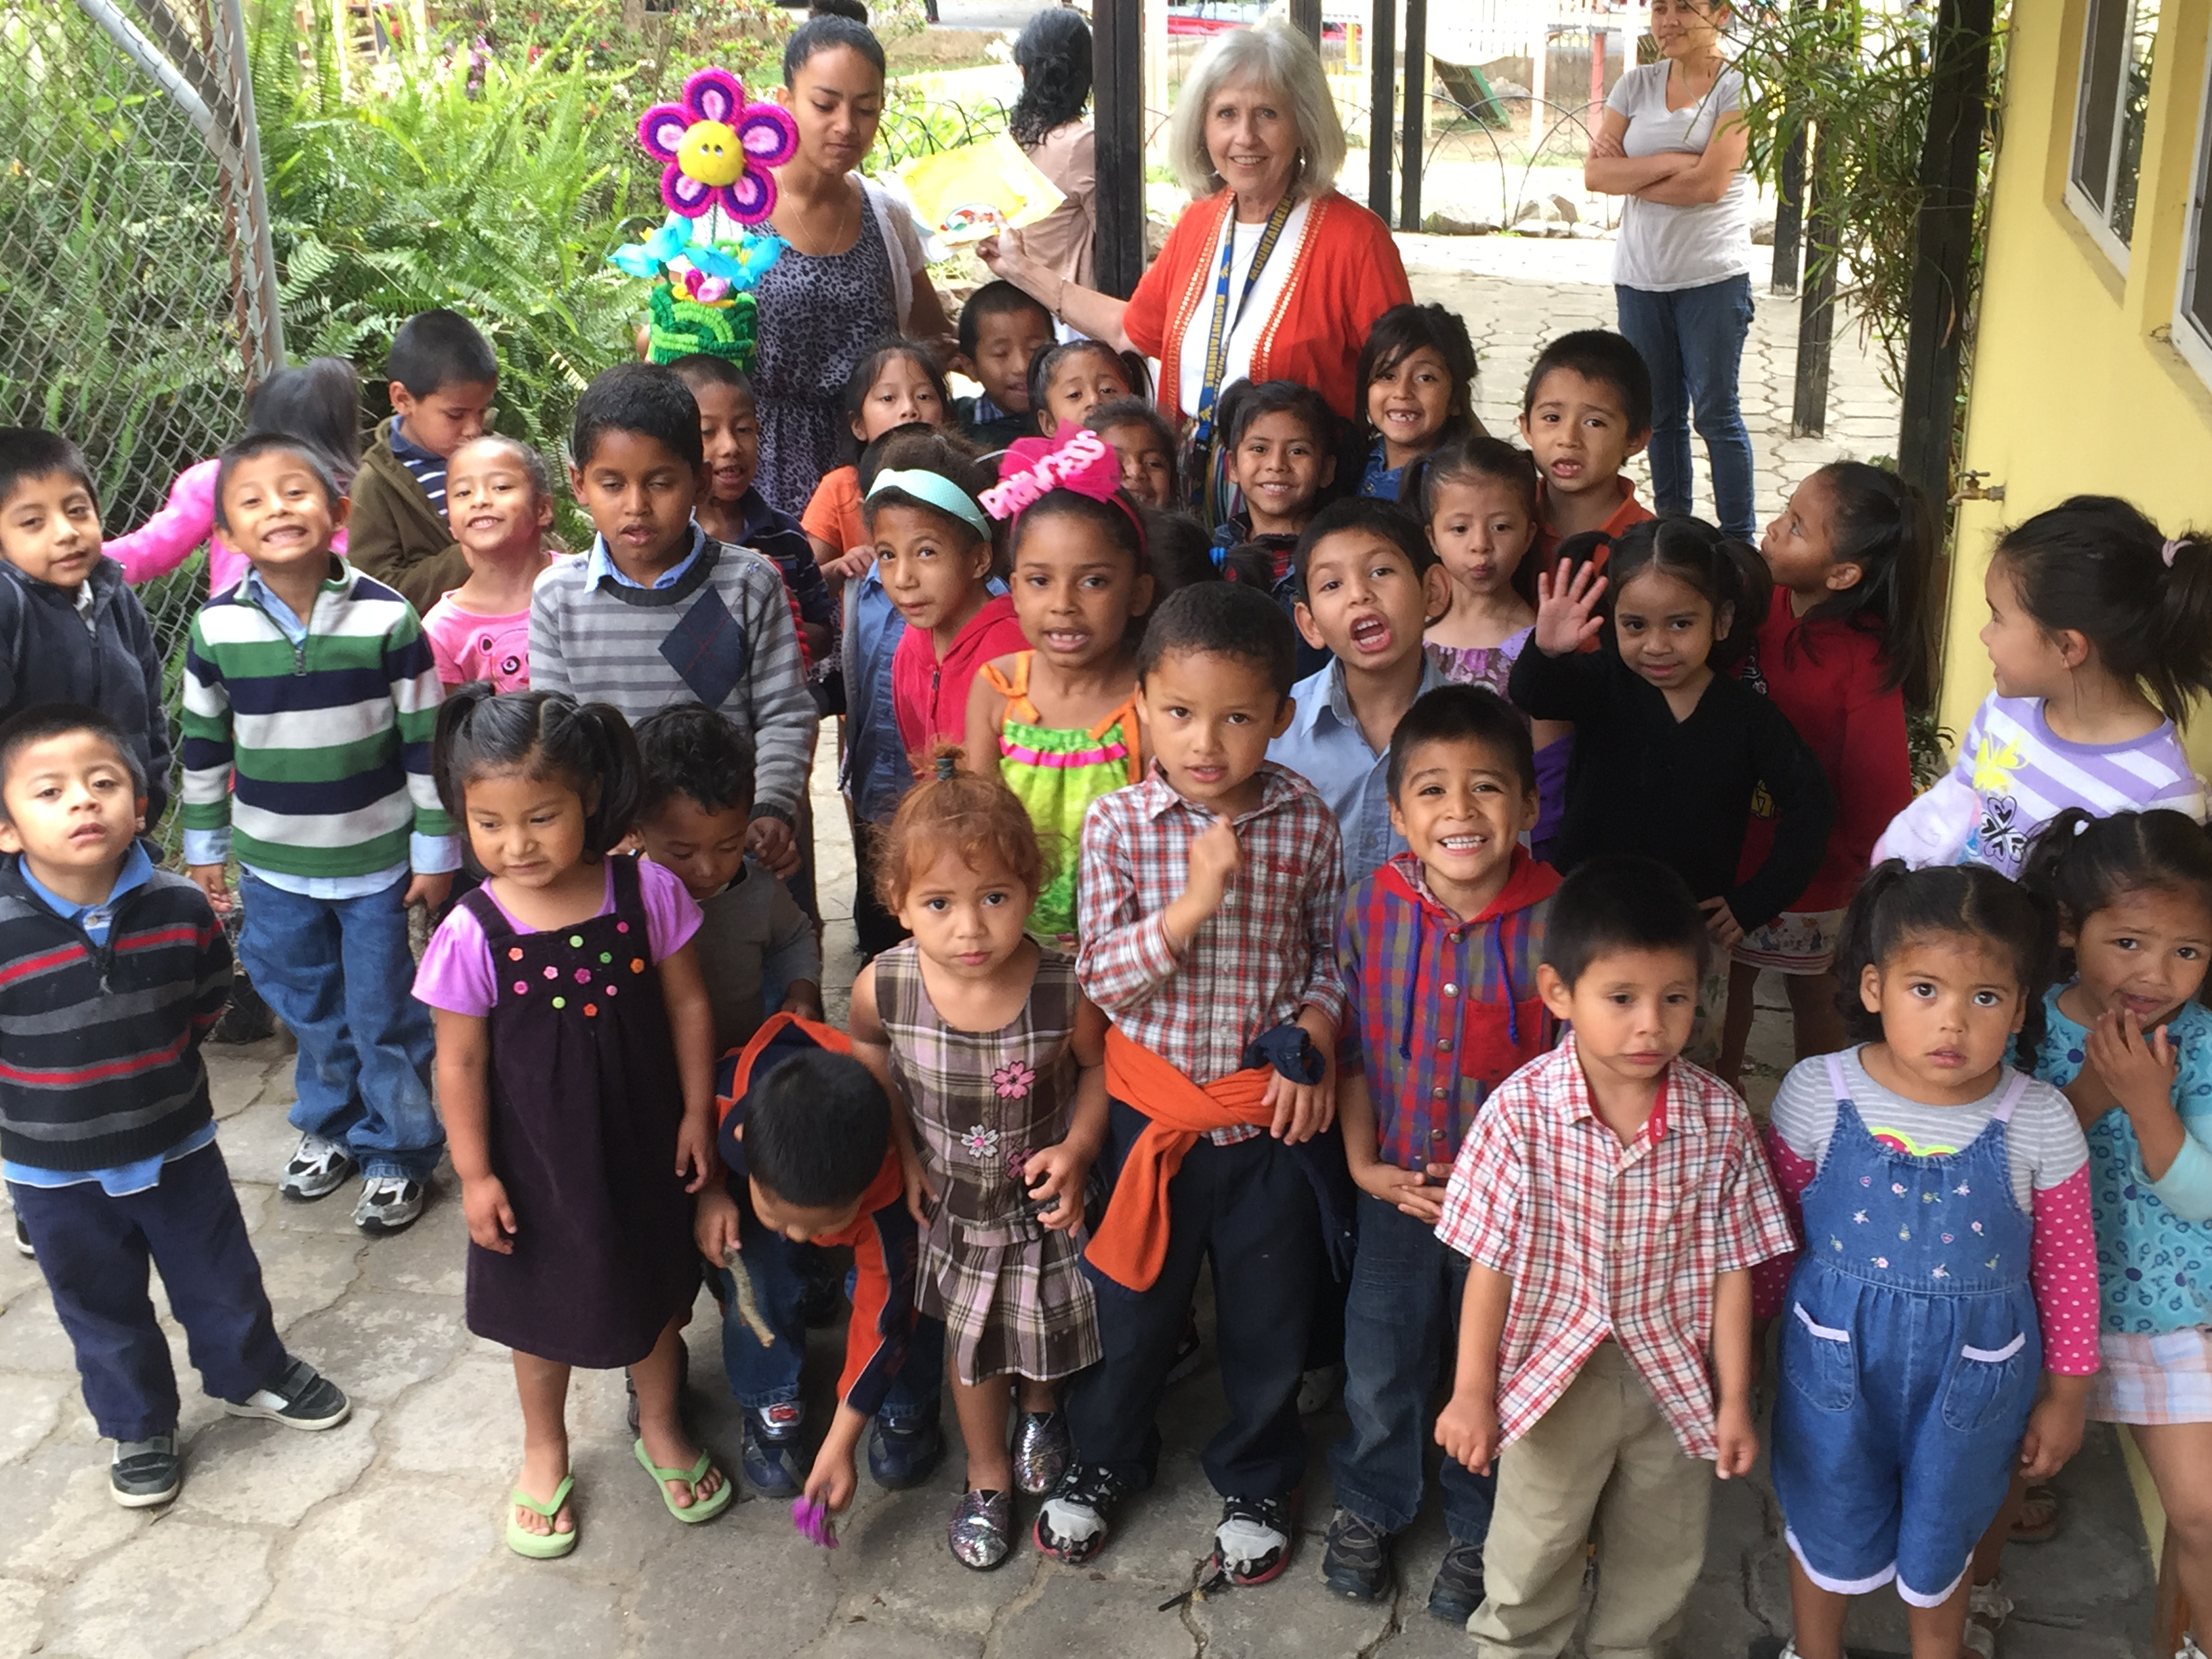 A big star from the toddlers for Mami